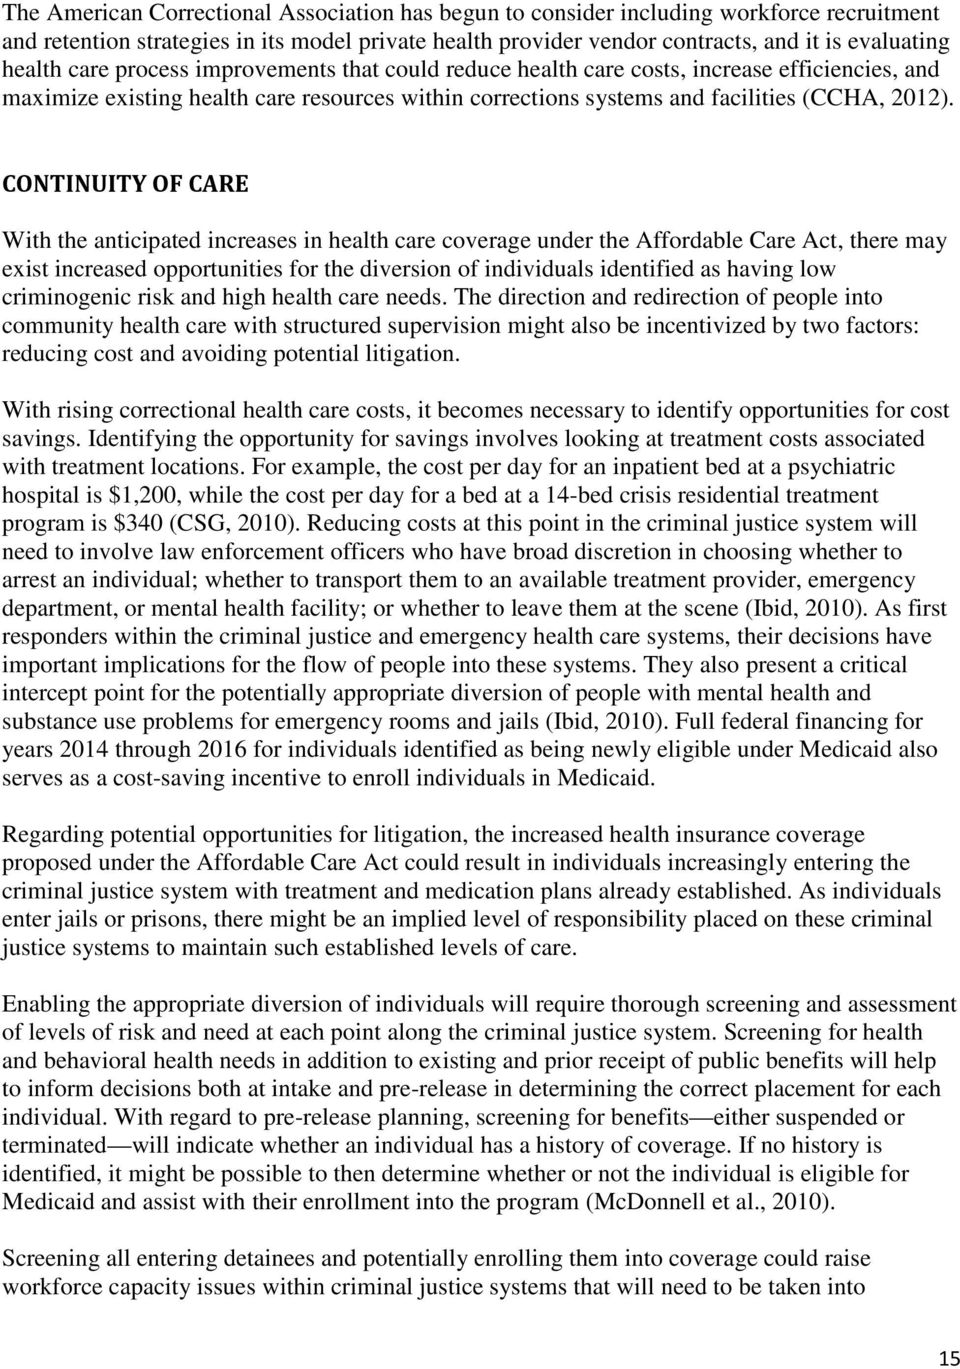 CONTINUITY OF CARE With the anticipated increases in health care coverage under the Affordable Care Act, there may exist increased opportunities for the diversion of individuals identified as having